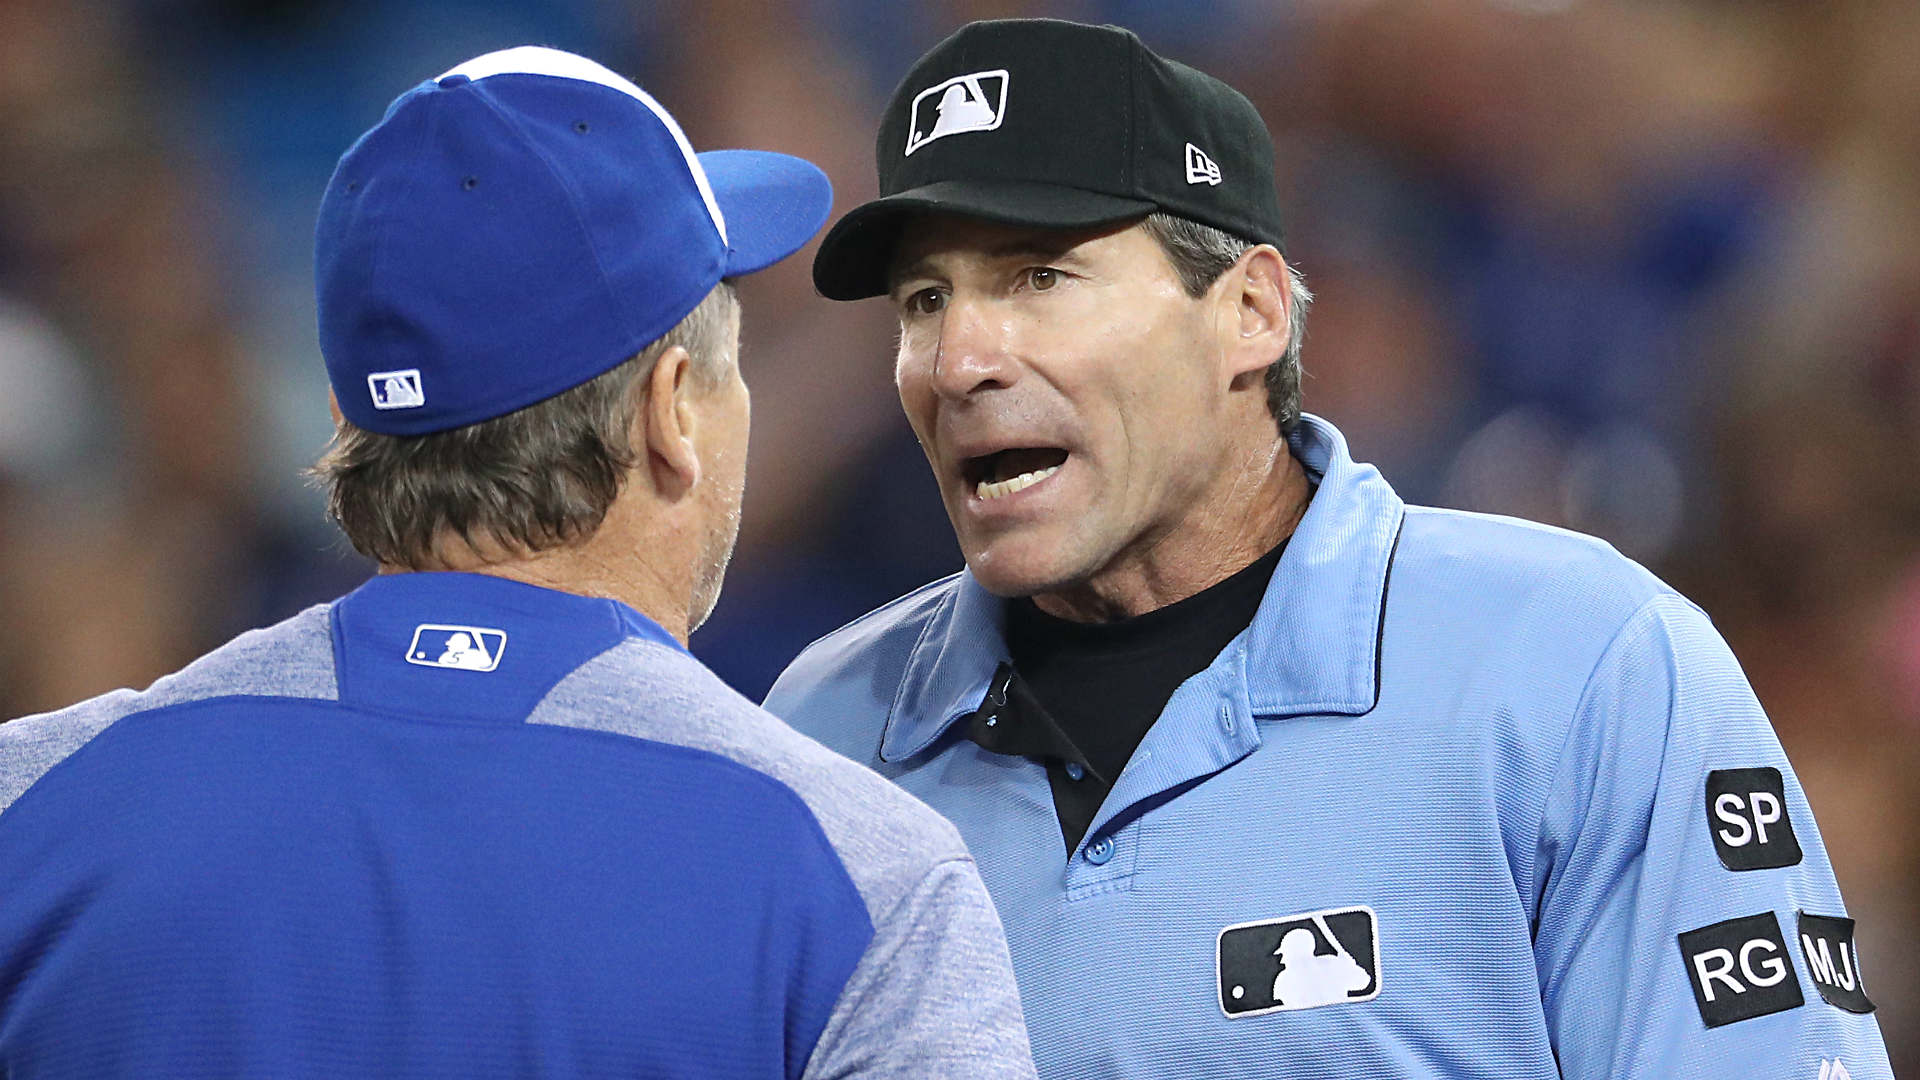 Umpire Angel Hernandez sues Major League Baseball over discrimination, treatment by Joe Torre